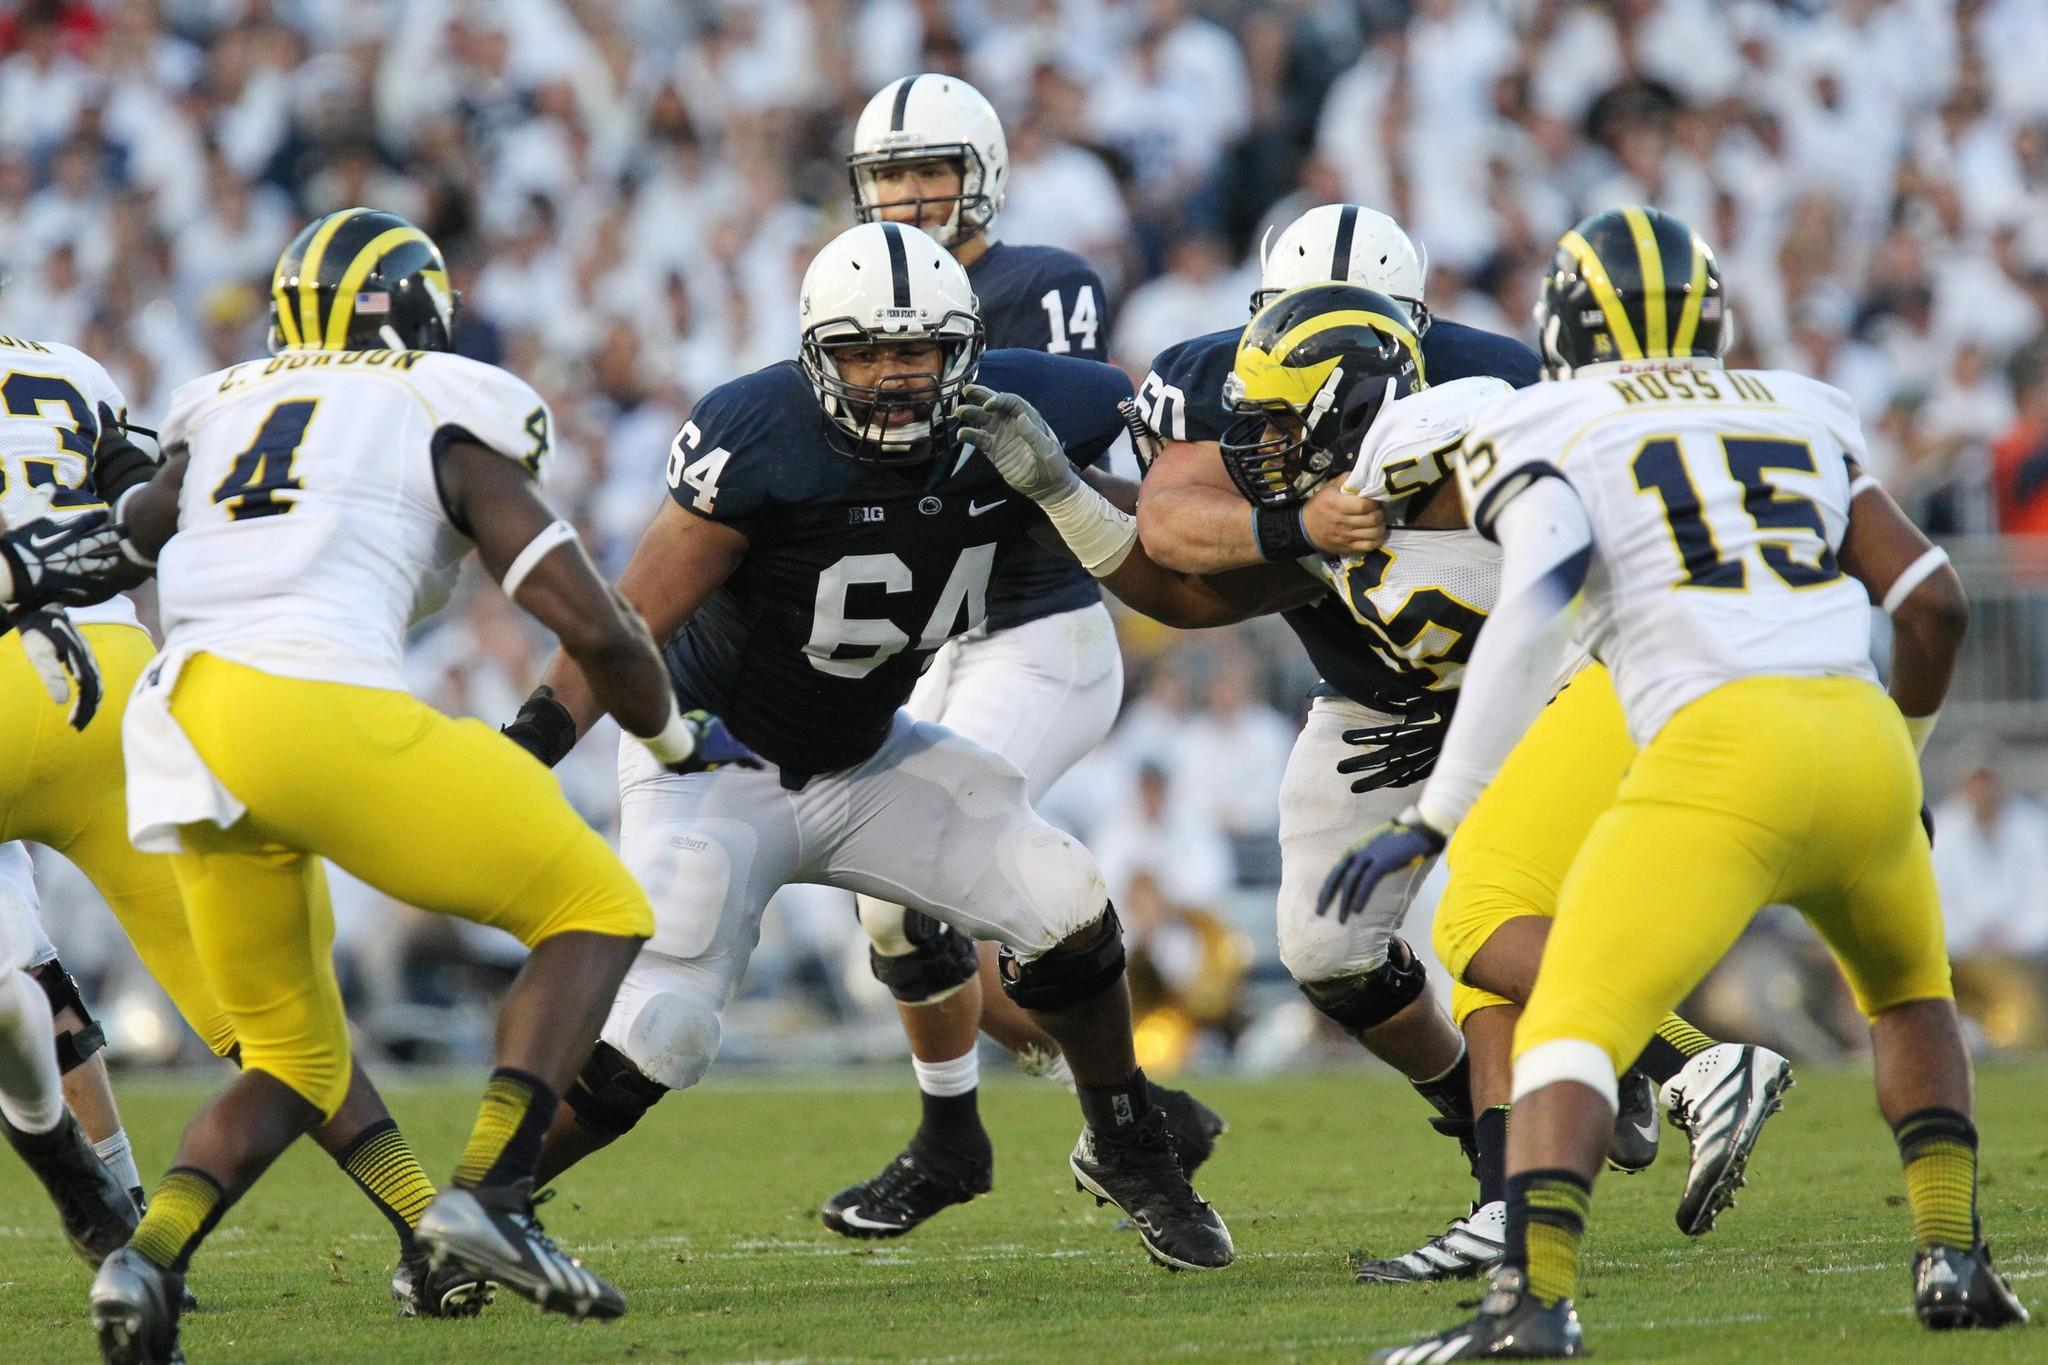 Penn State guard John Urschel attempts to block during the second quarter against Michigan in October. The Ravens drafted Urschel in the fifth round.